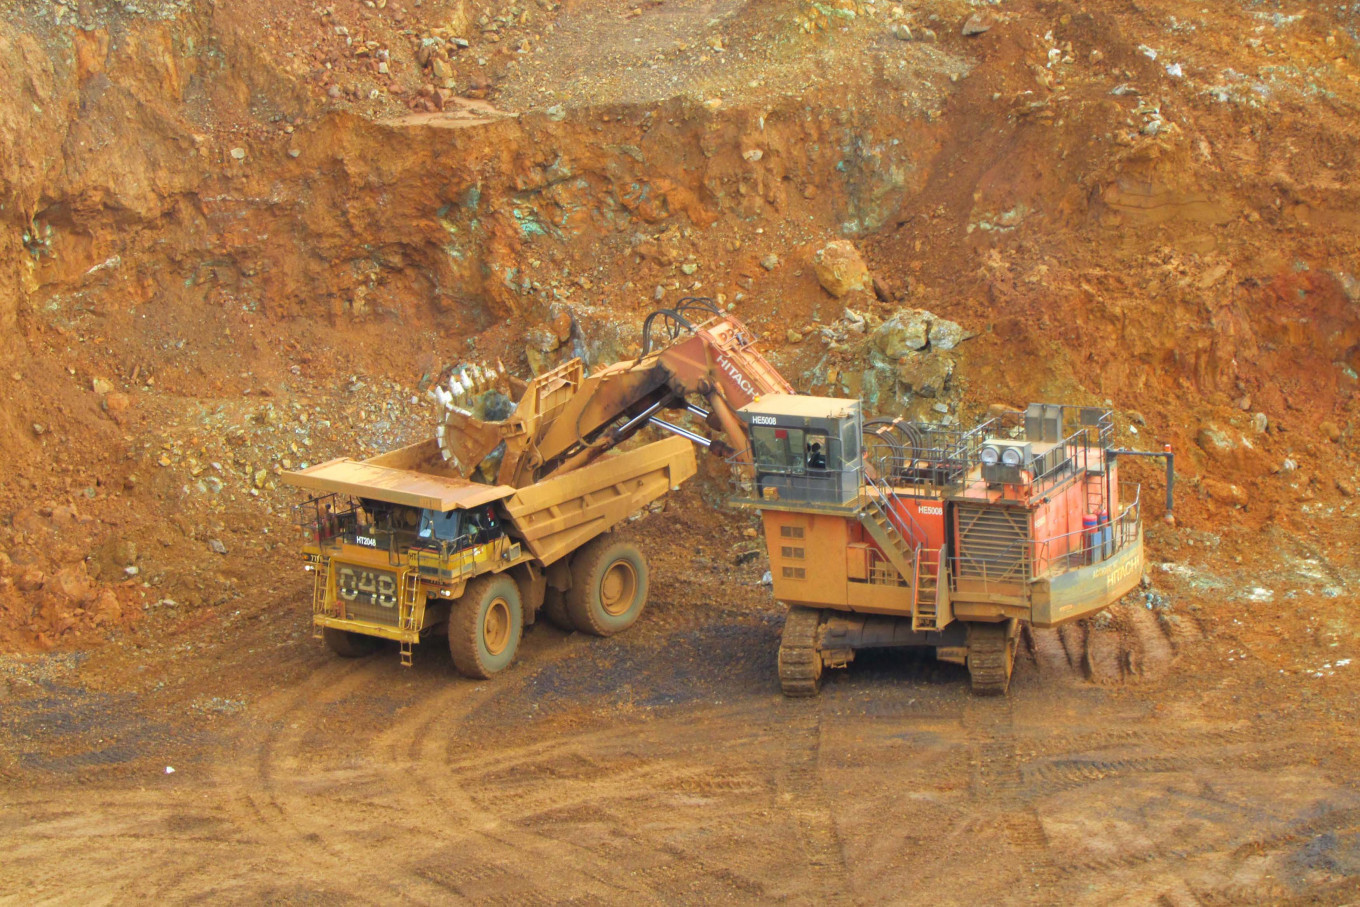 Prioritize safety from COVID-19 in high-risk mining operations